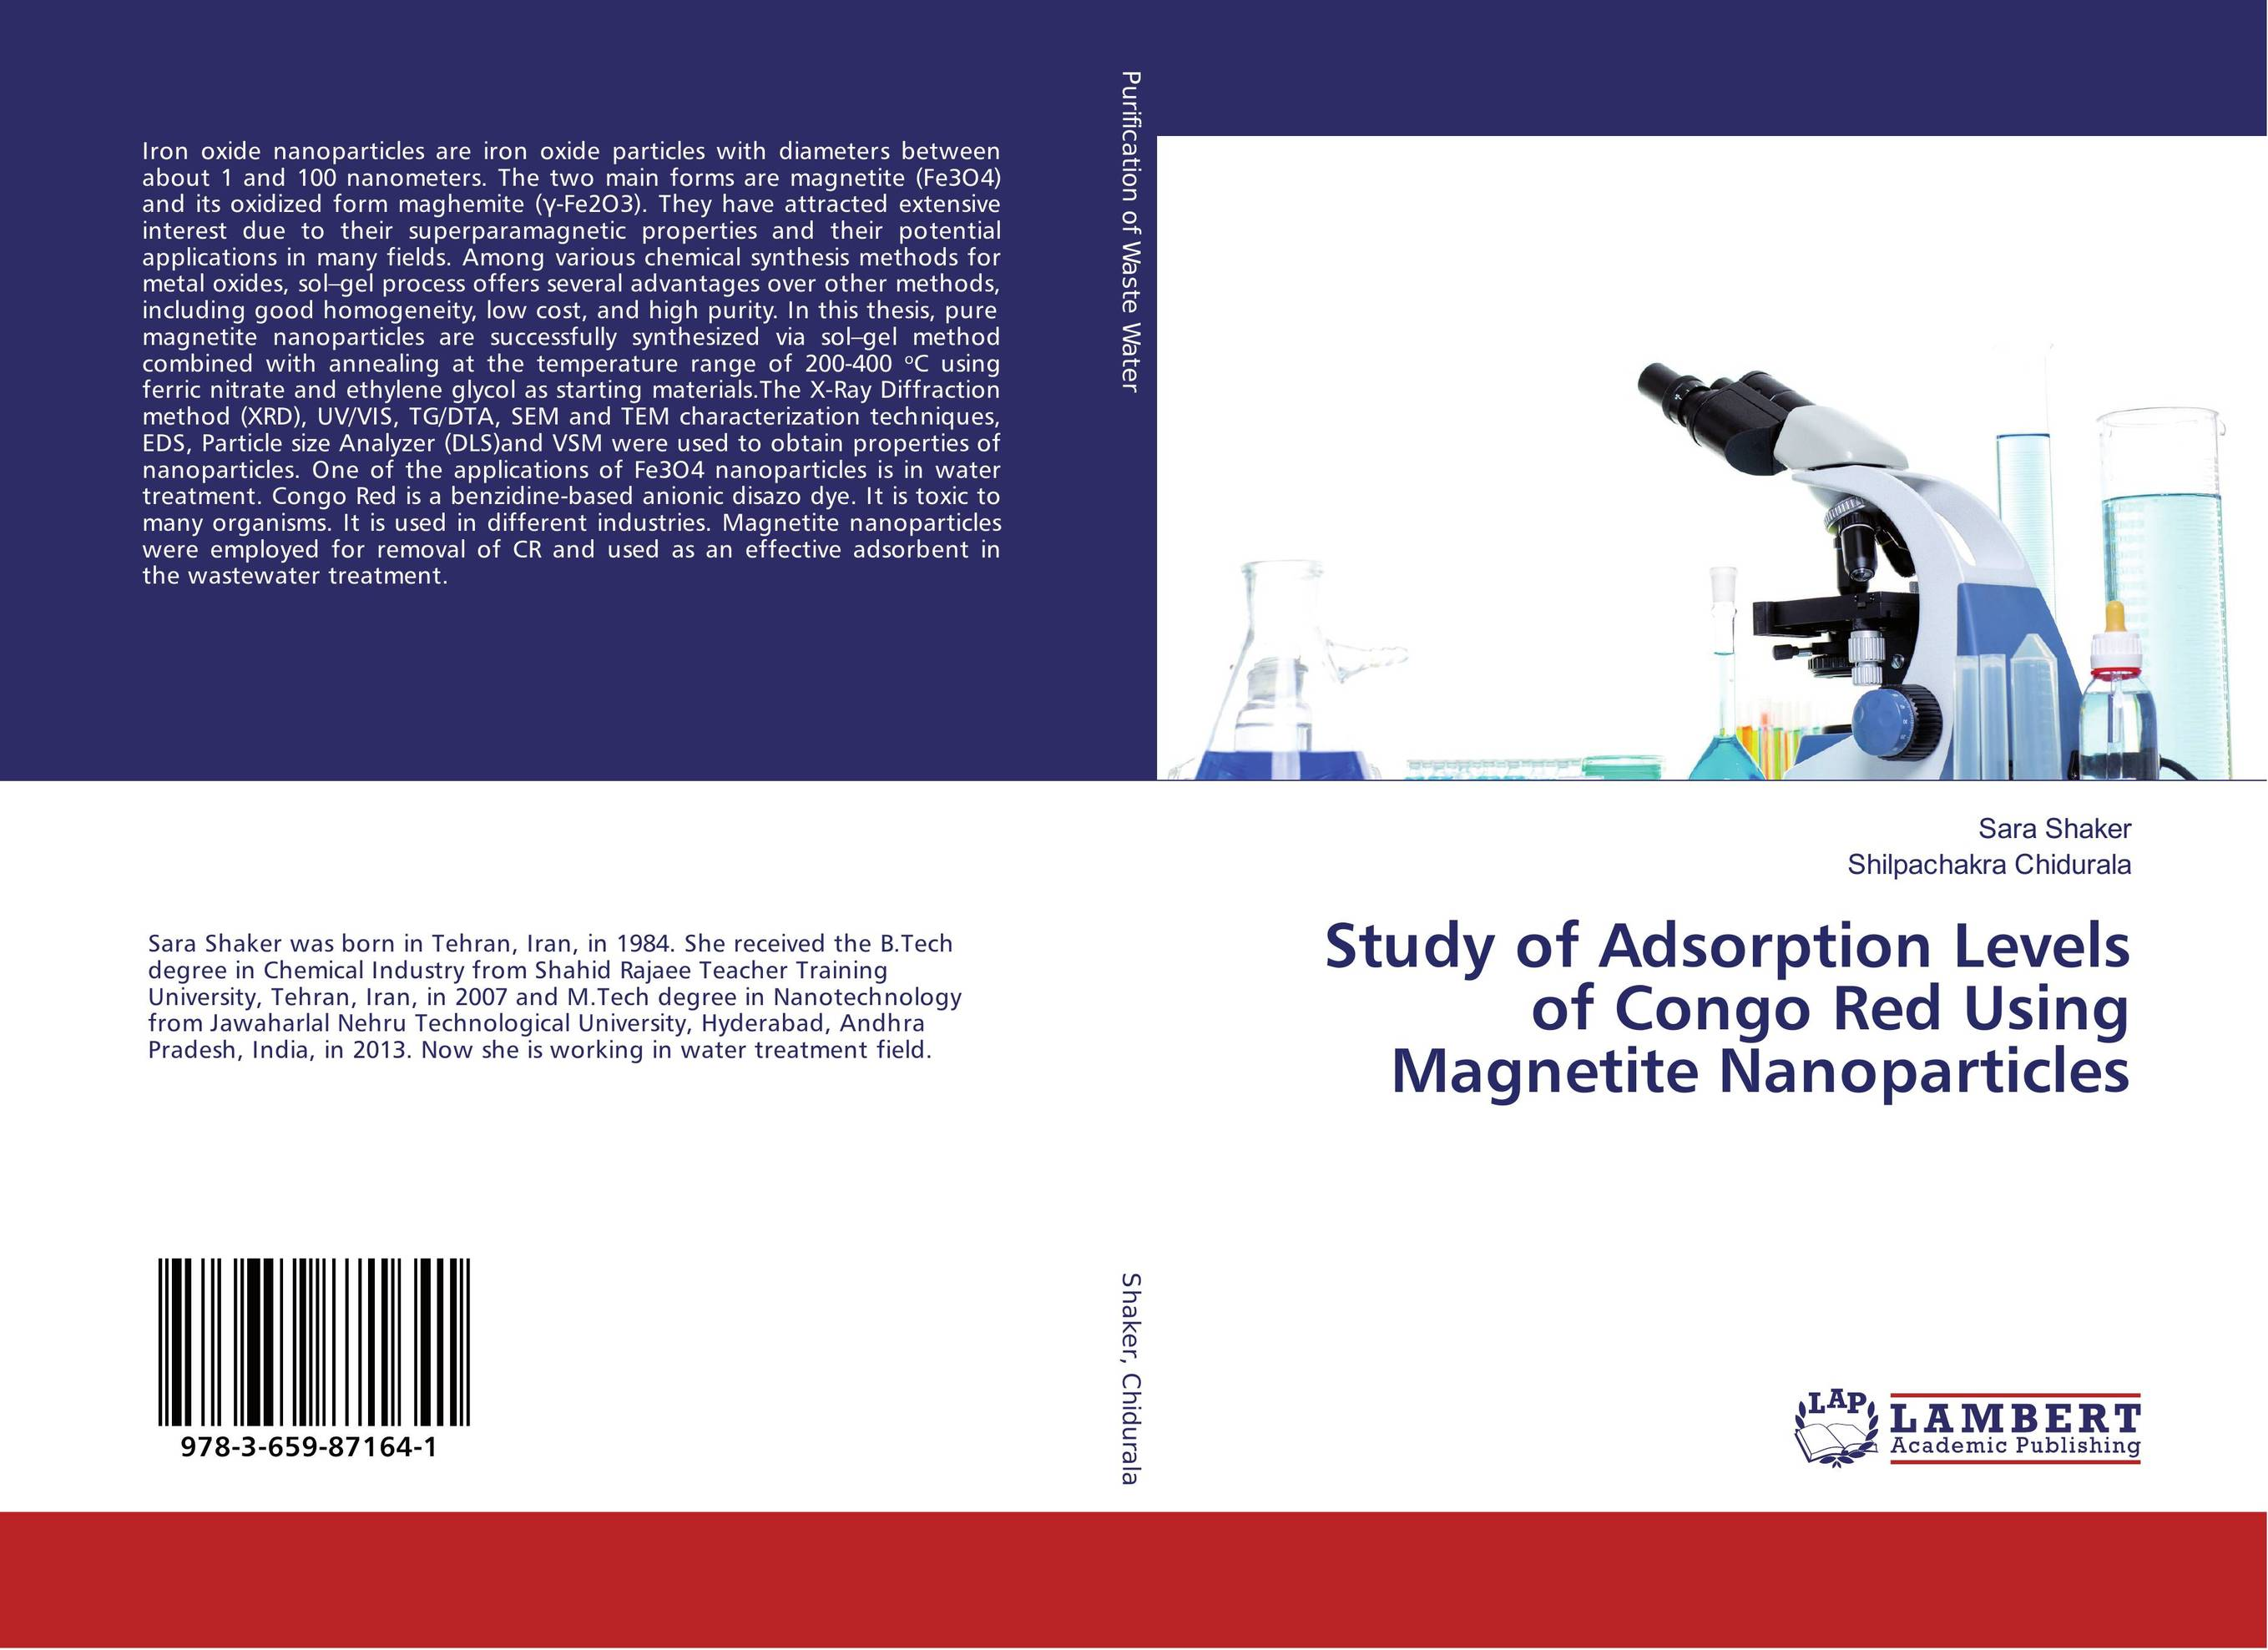 Study of Adsorption Levels of Congo Red Using Magnetite Nanoparticles green synthesis of magnetite and silver nanoparticles